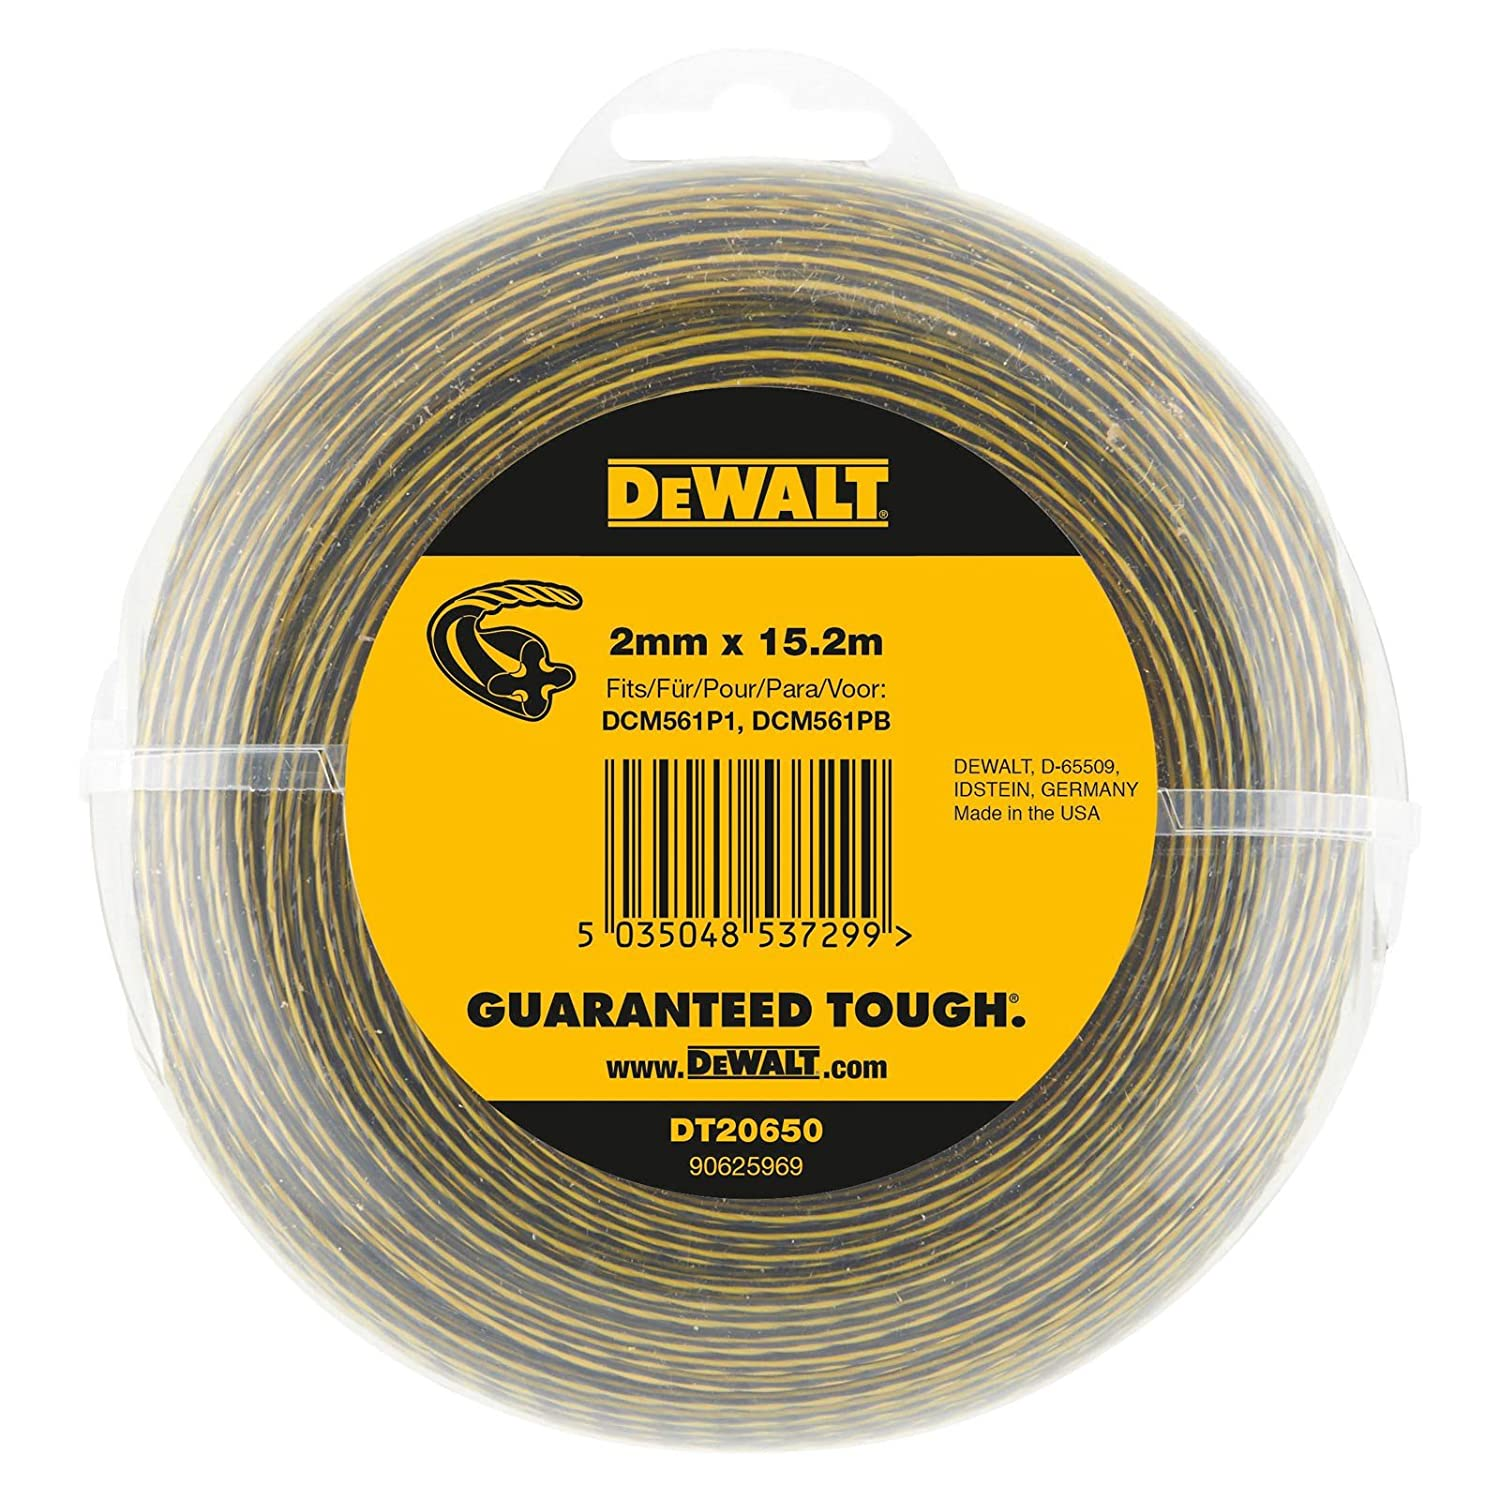 DeWalt DT20650-QZ Trimmer Thread, 15,2 m x 2,0 mm